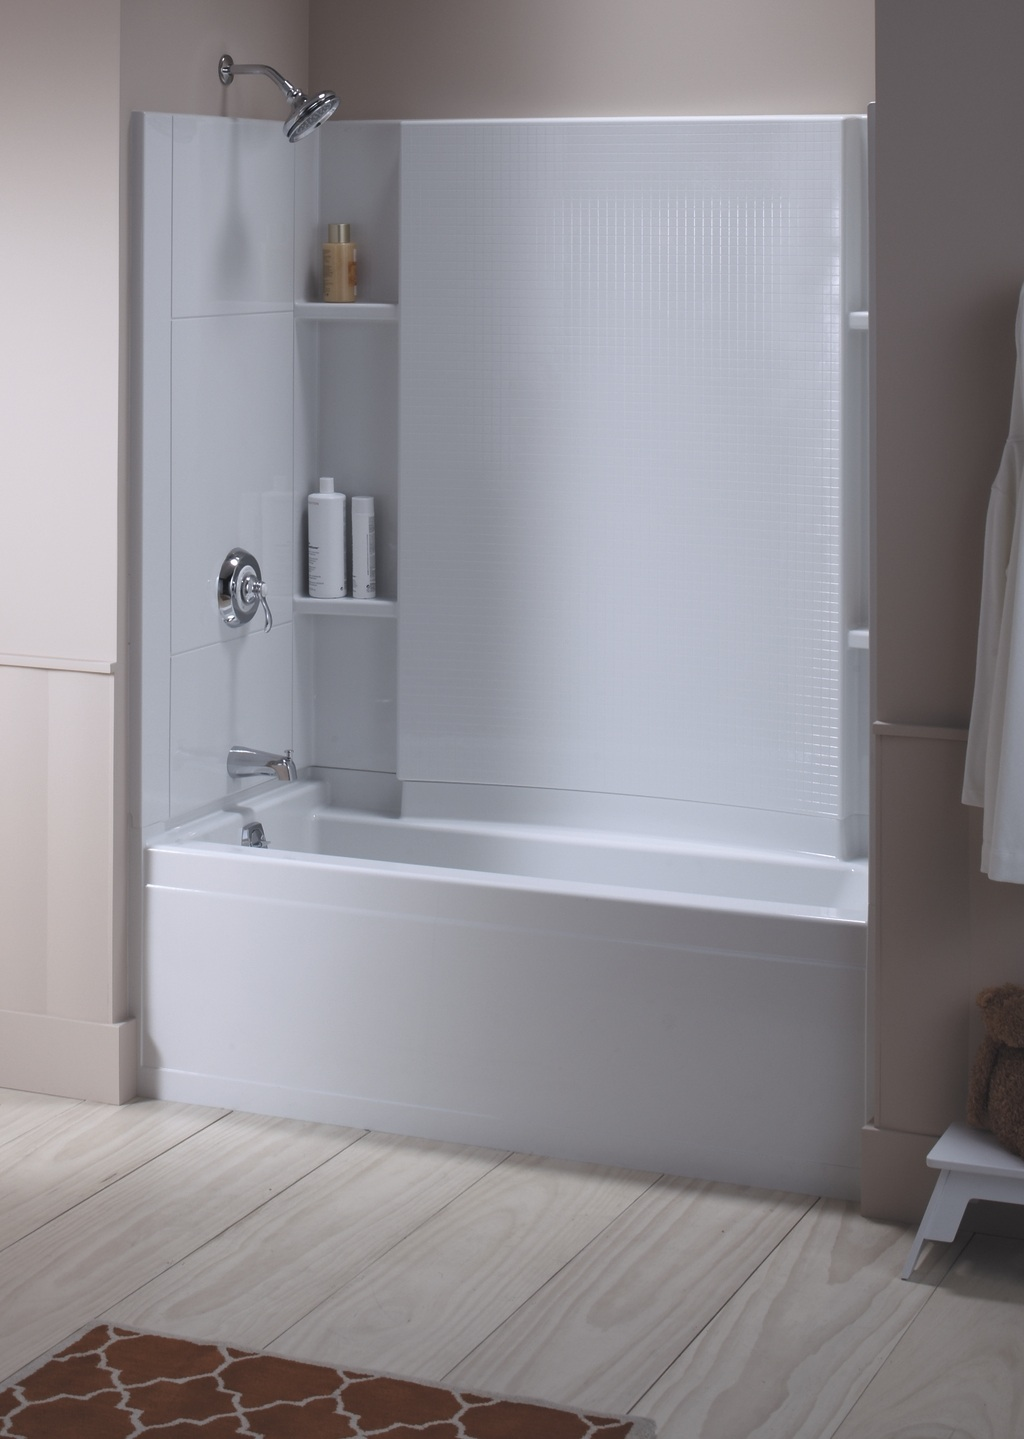 Accord Tub with Shelving